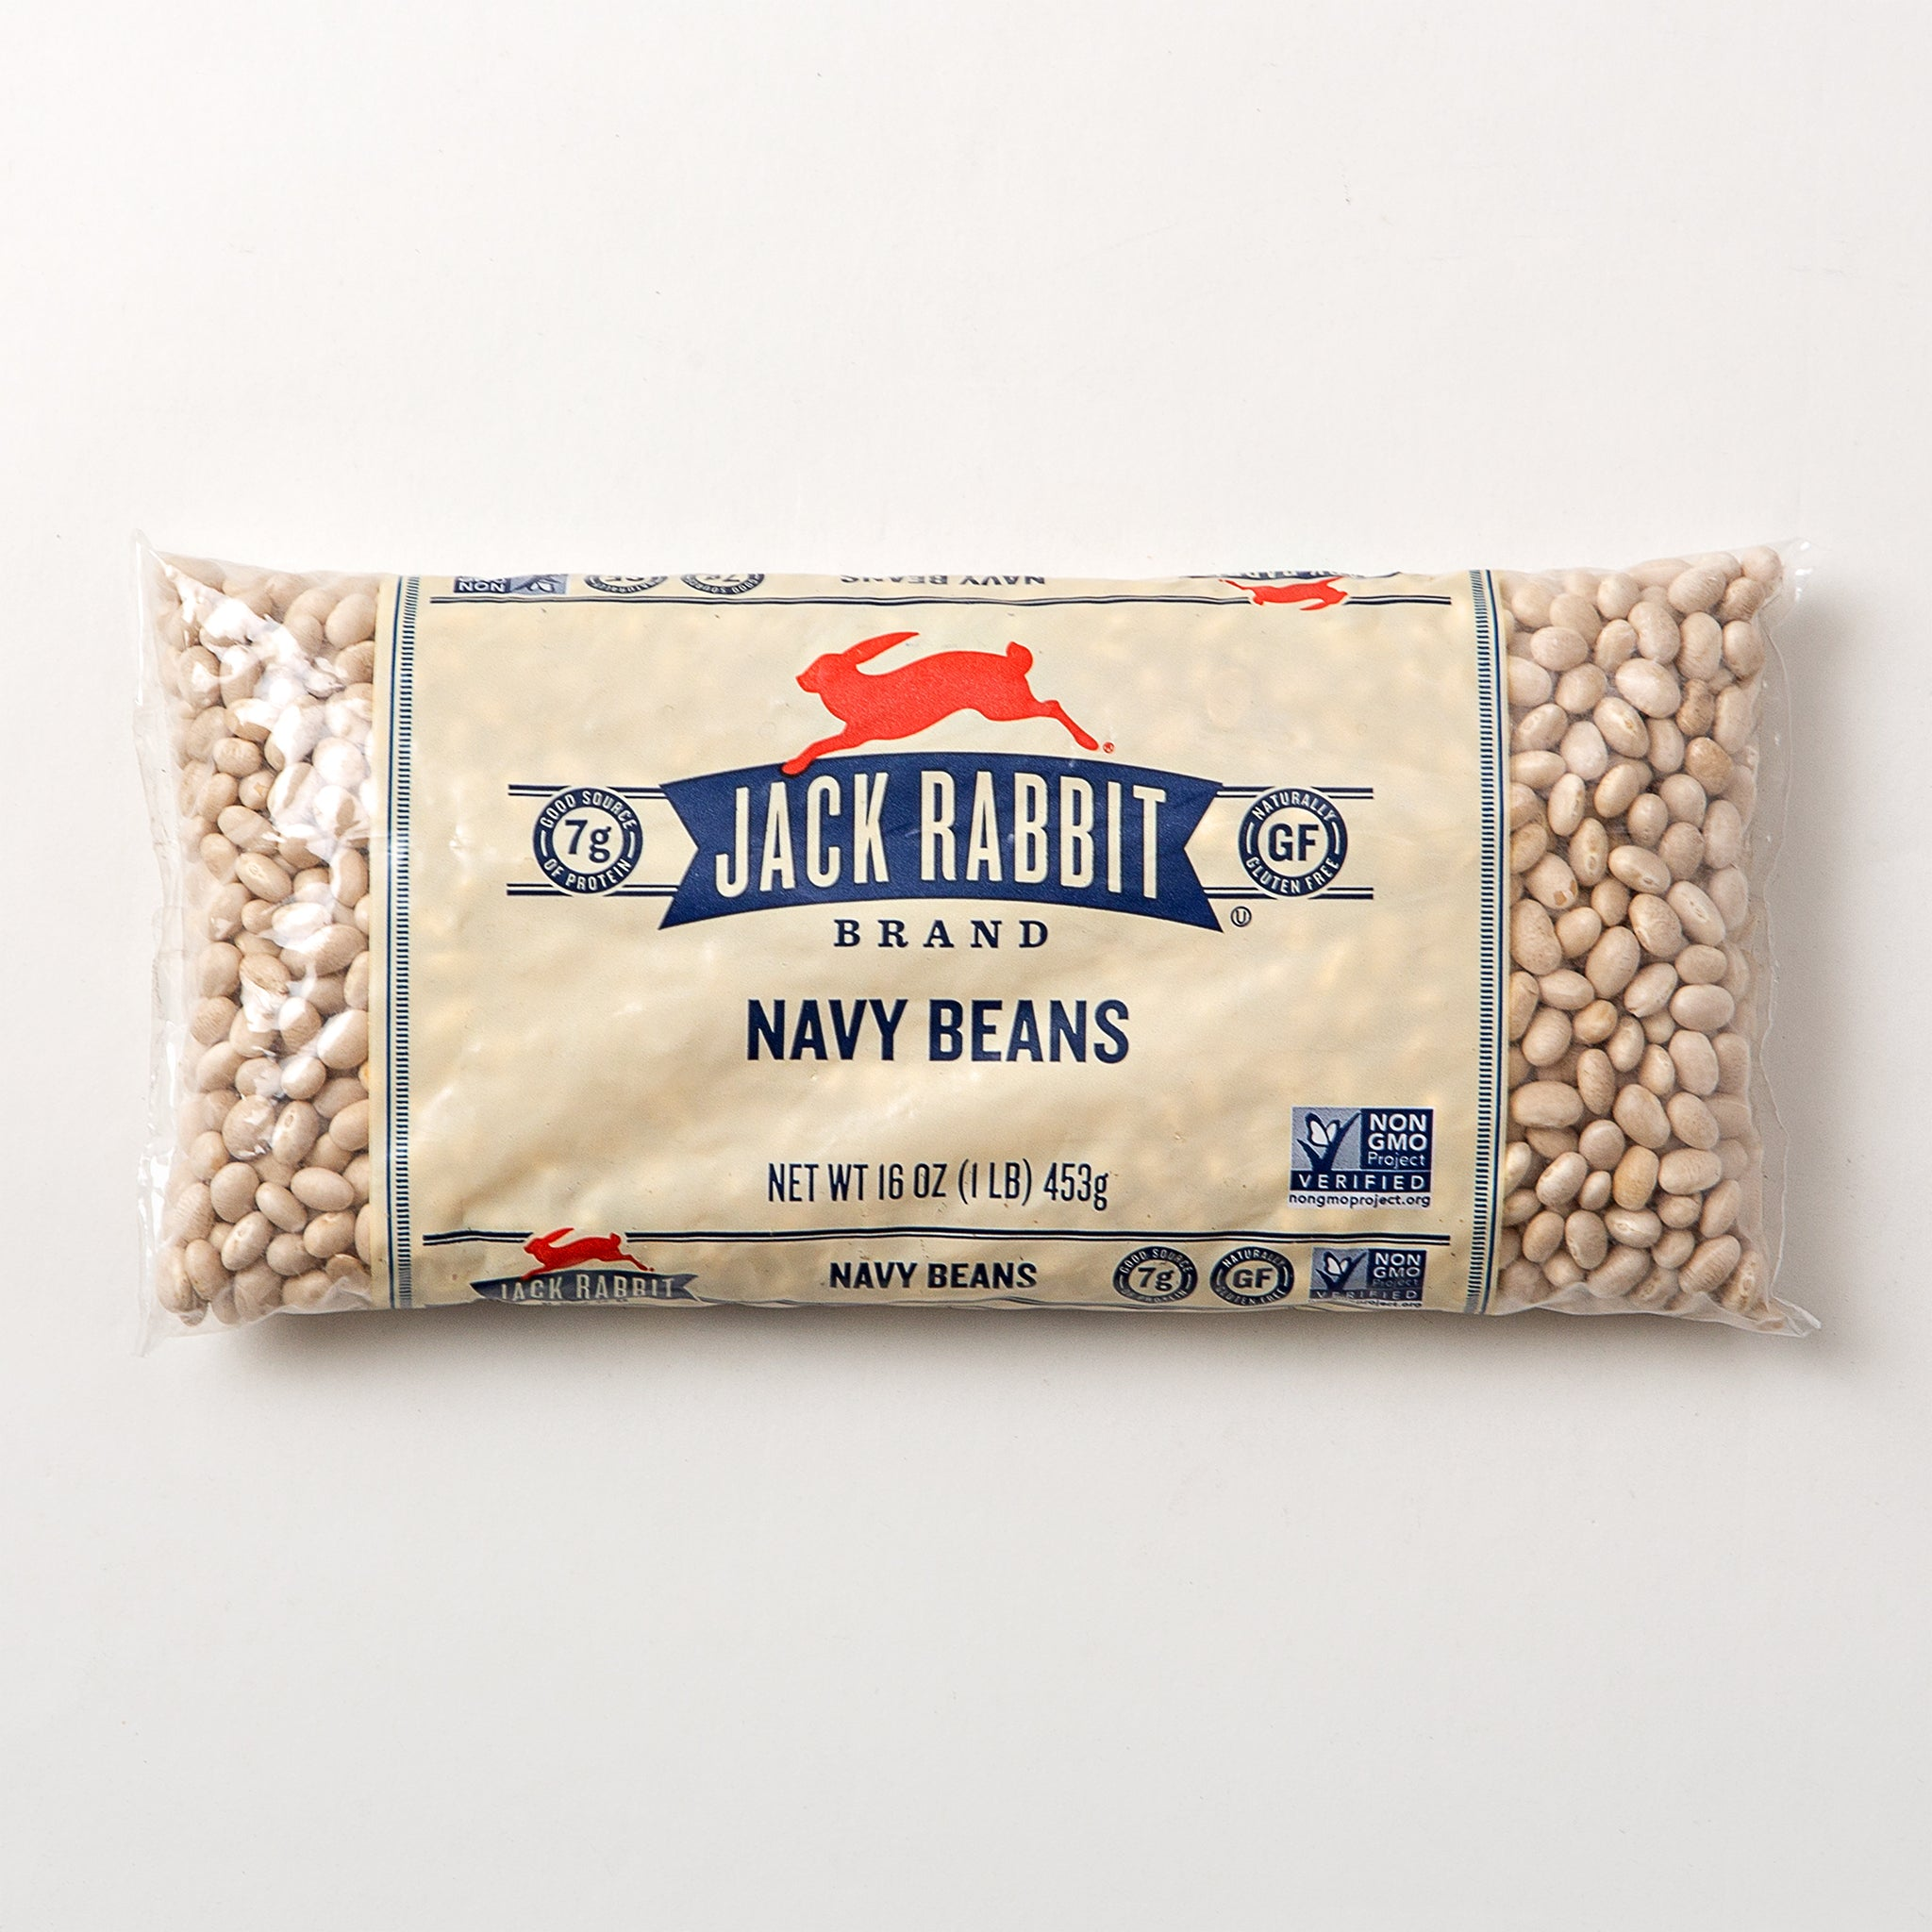 Jack Rabbit Navy Beans